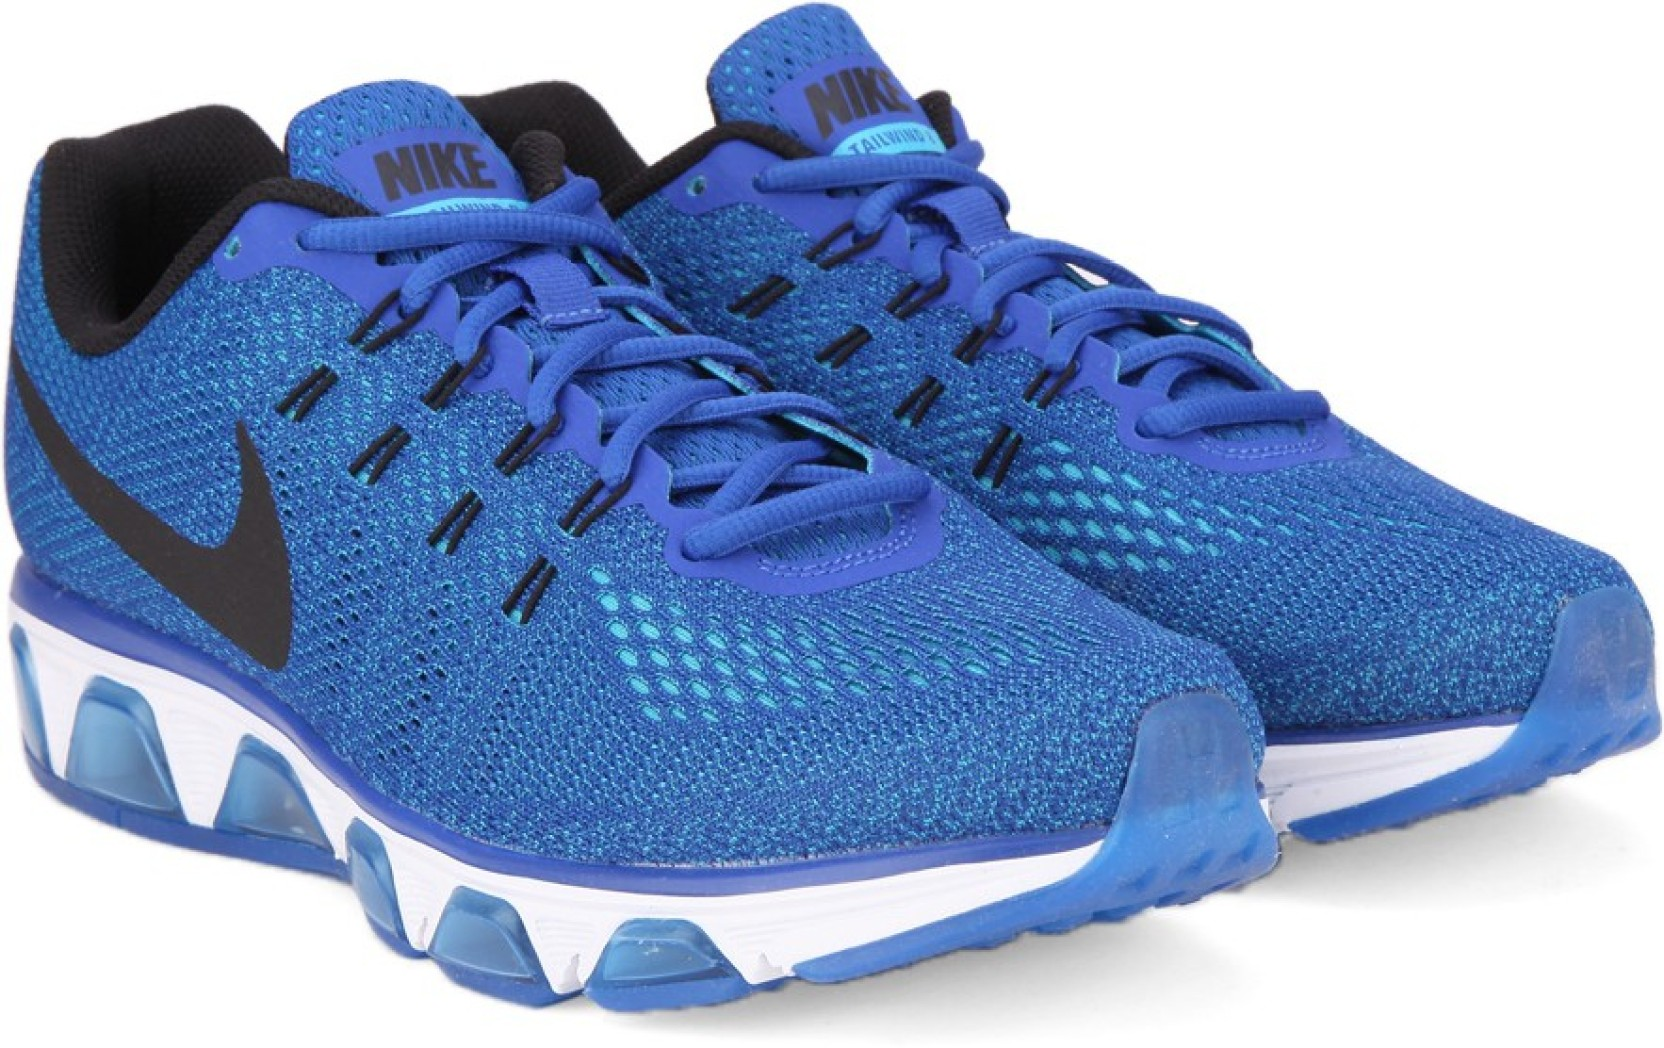 brand new 0488d 31e8e Nike AIR MAX TAILWIND 8 Running Shoes For Men (Blue, Black)